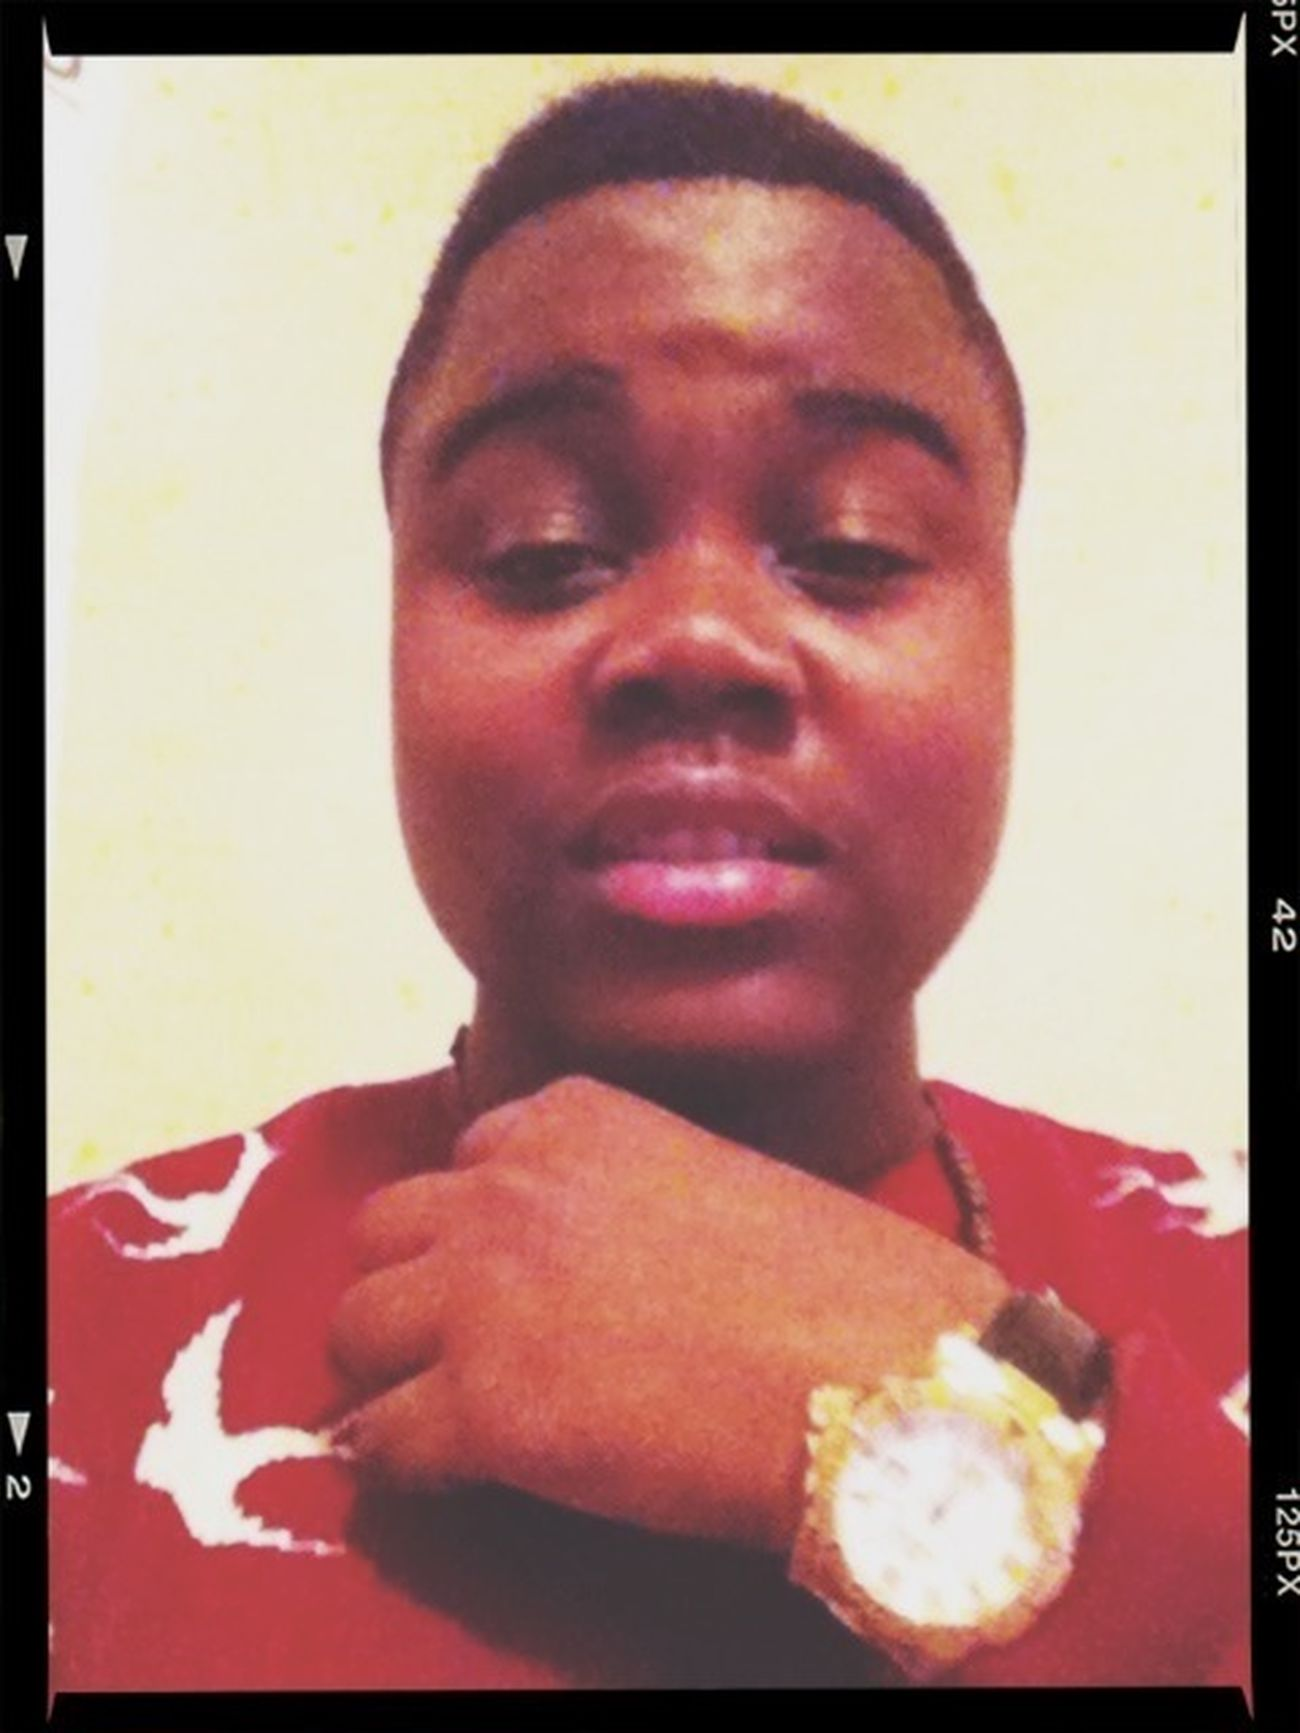 I'm Iced out hahaha Chilling Swag Handsome Rappers